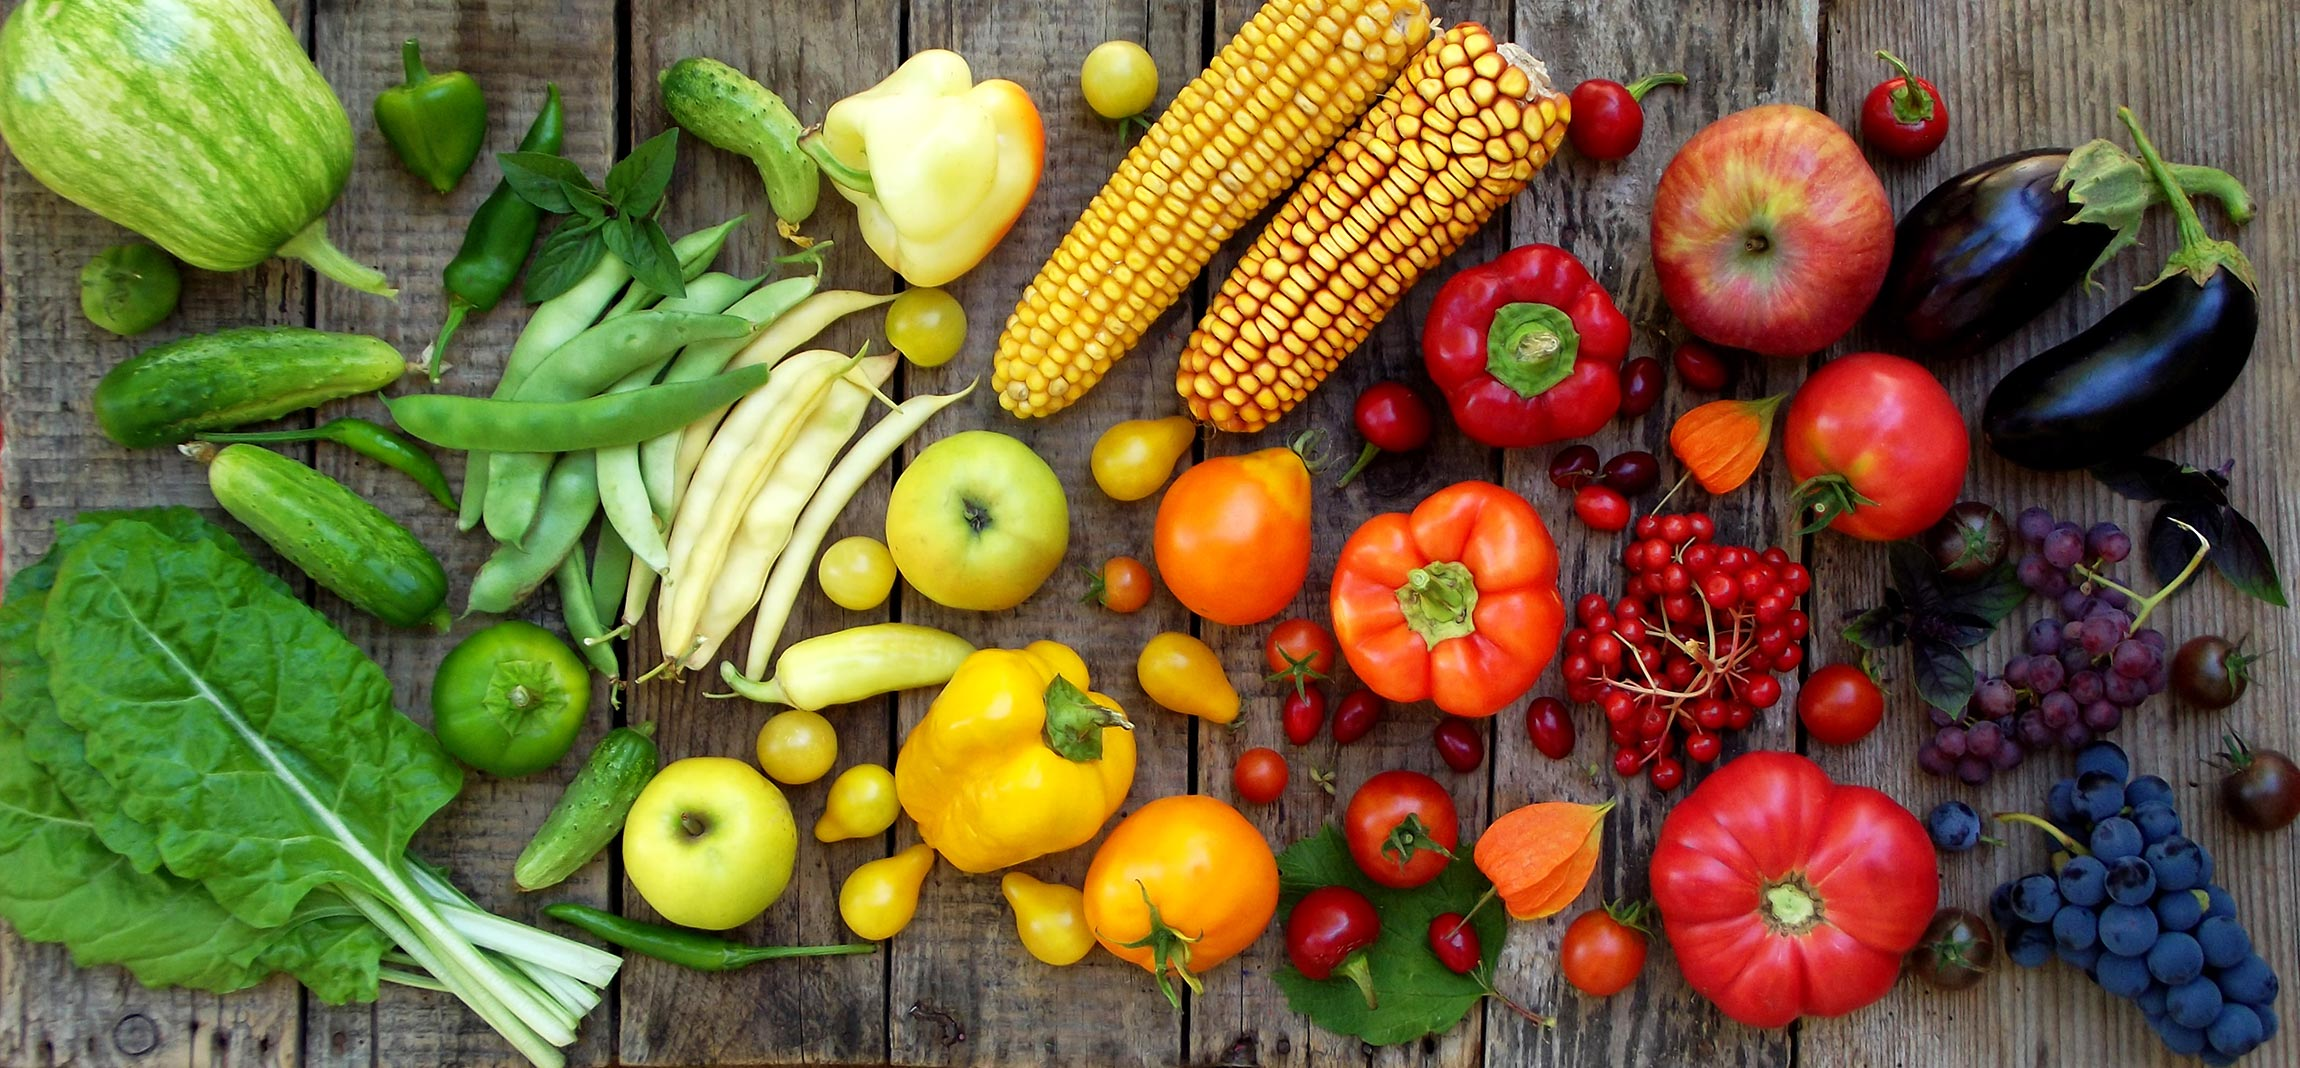 Rainbow of fruits and veggies